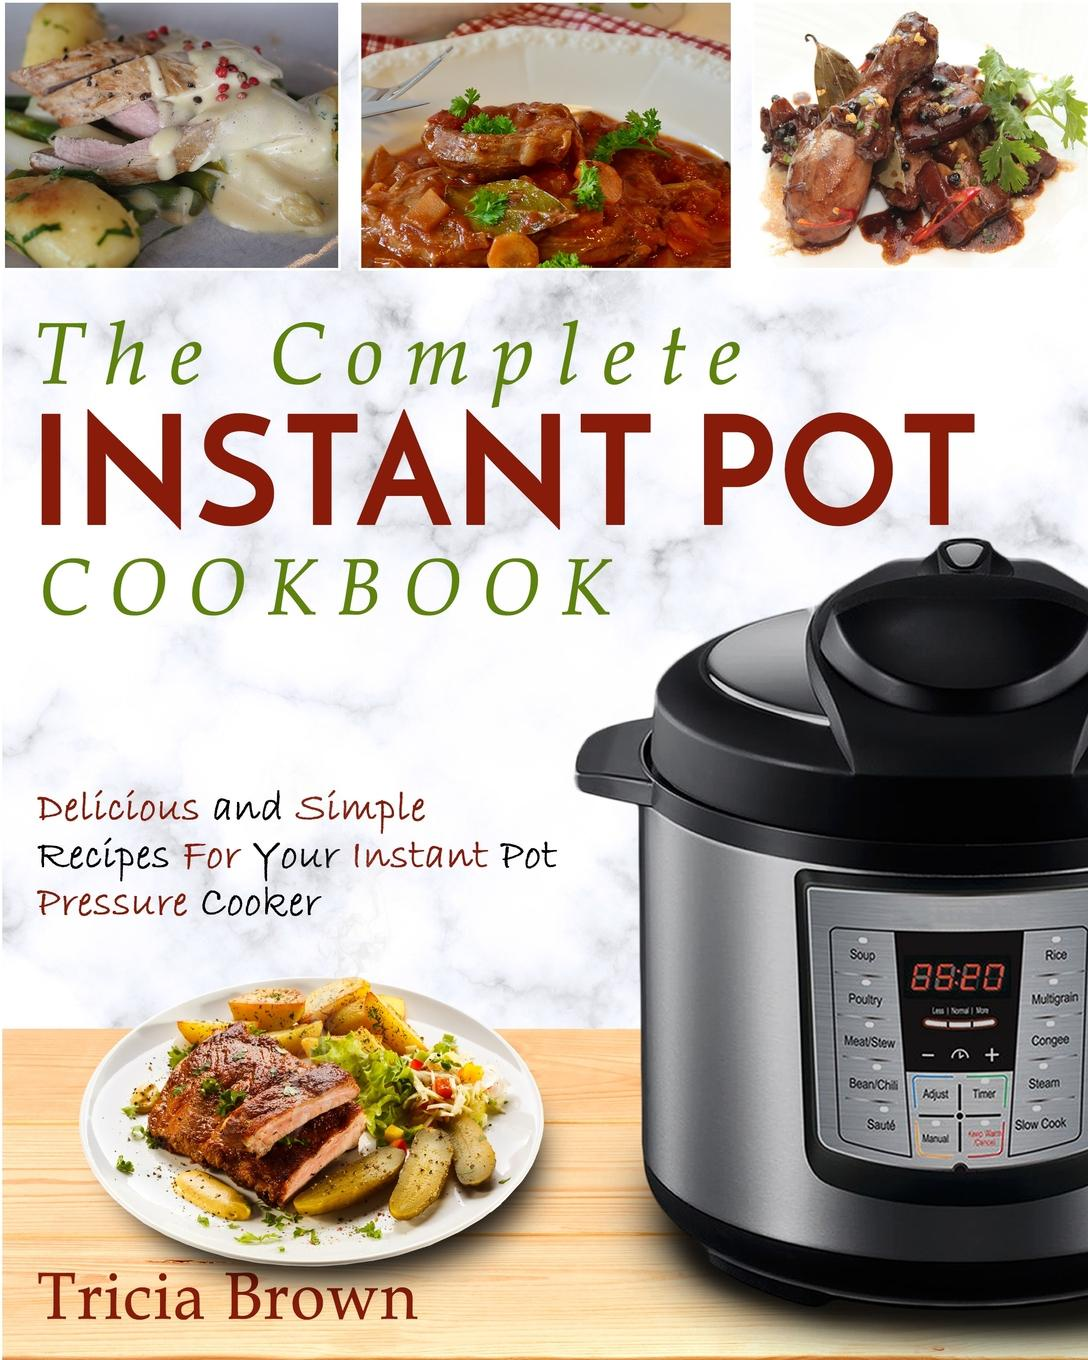 Tricia Brown Instant Pot Cookbook. The Complete Instant Pot Cookbook - Delicious and Simple Recipes for your Instant Pot Pressure Cooker cocktails fancy and delicious recipes for all tastes